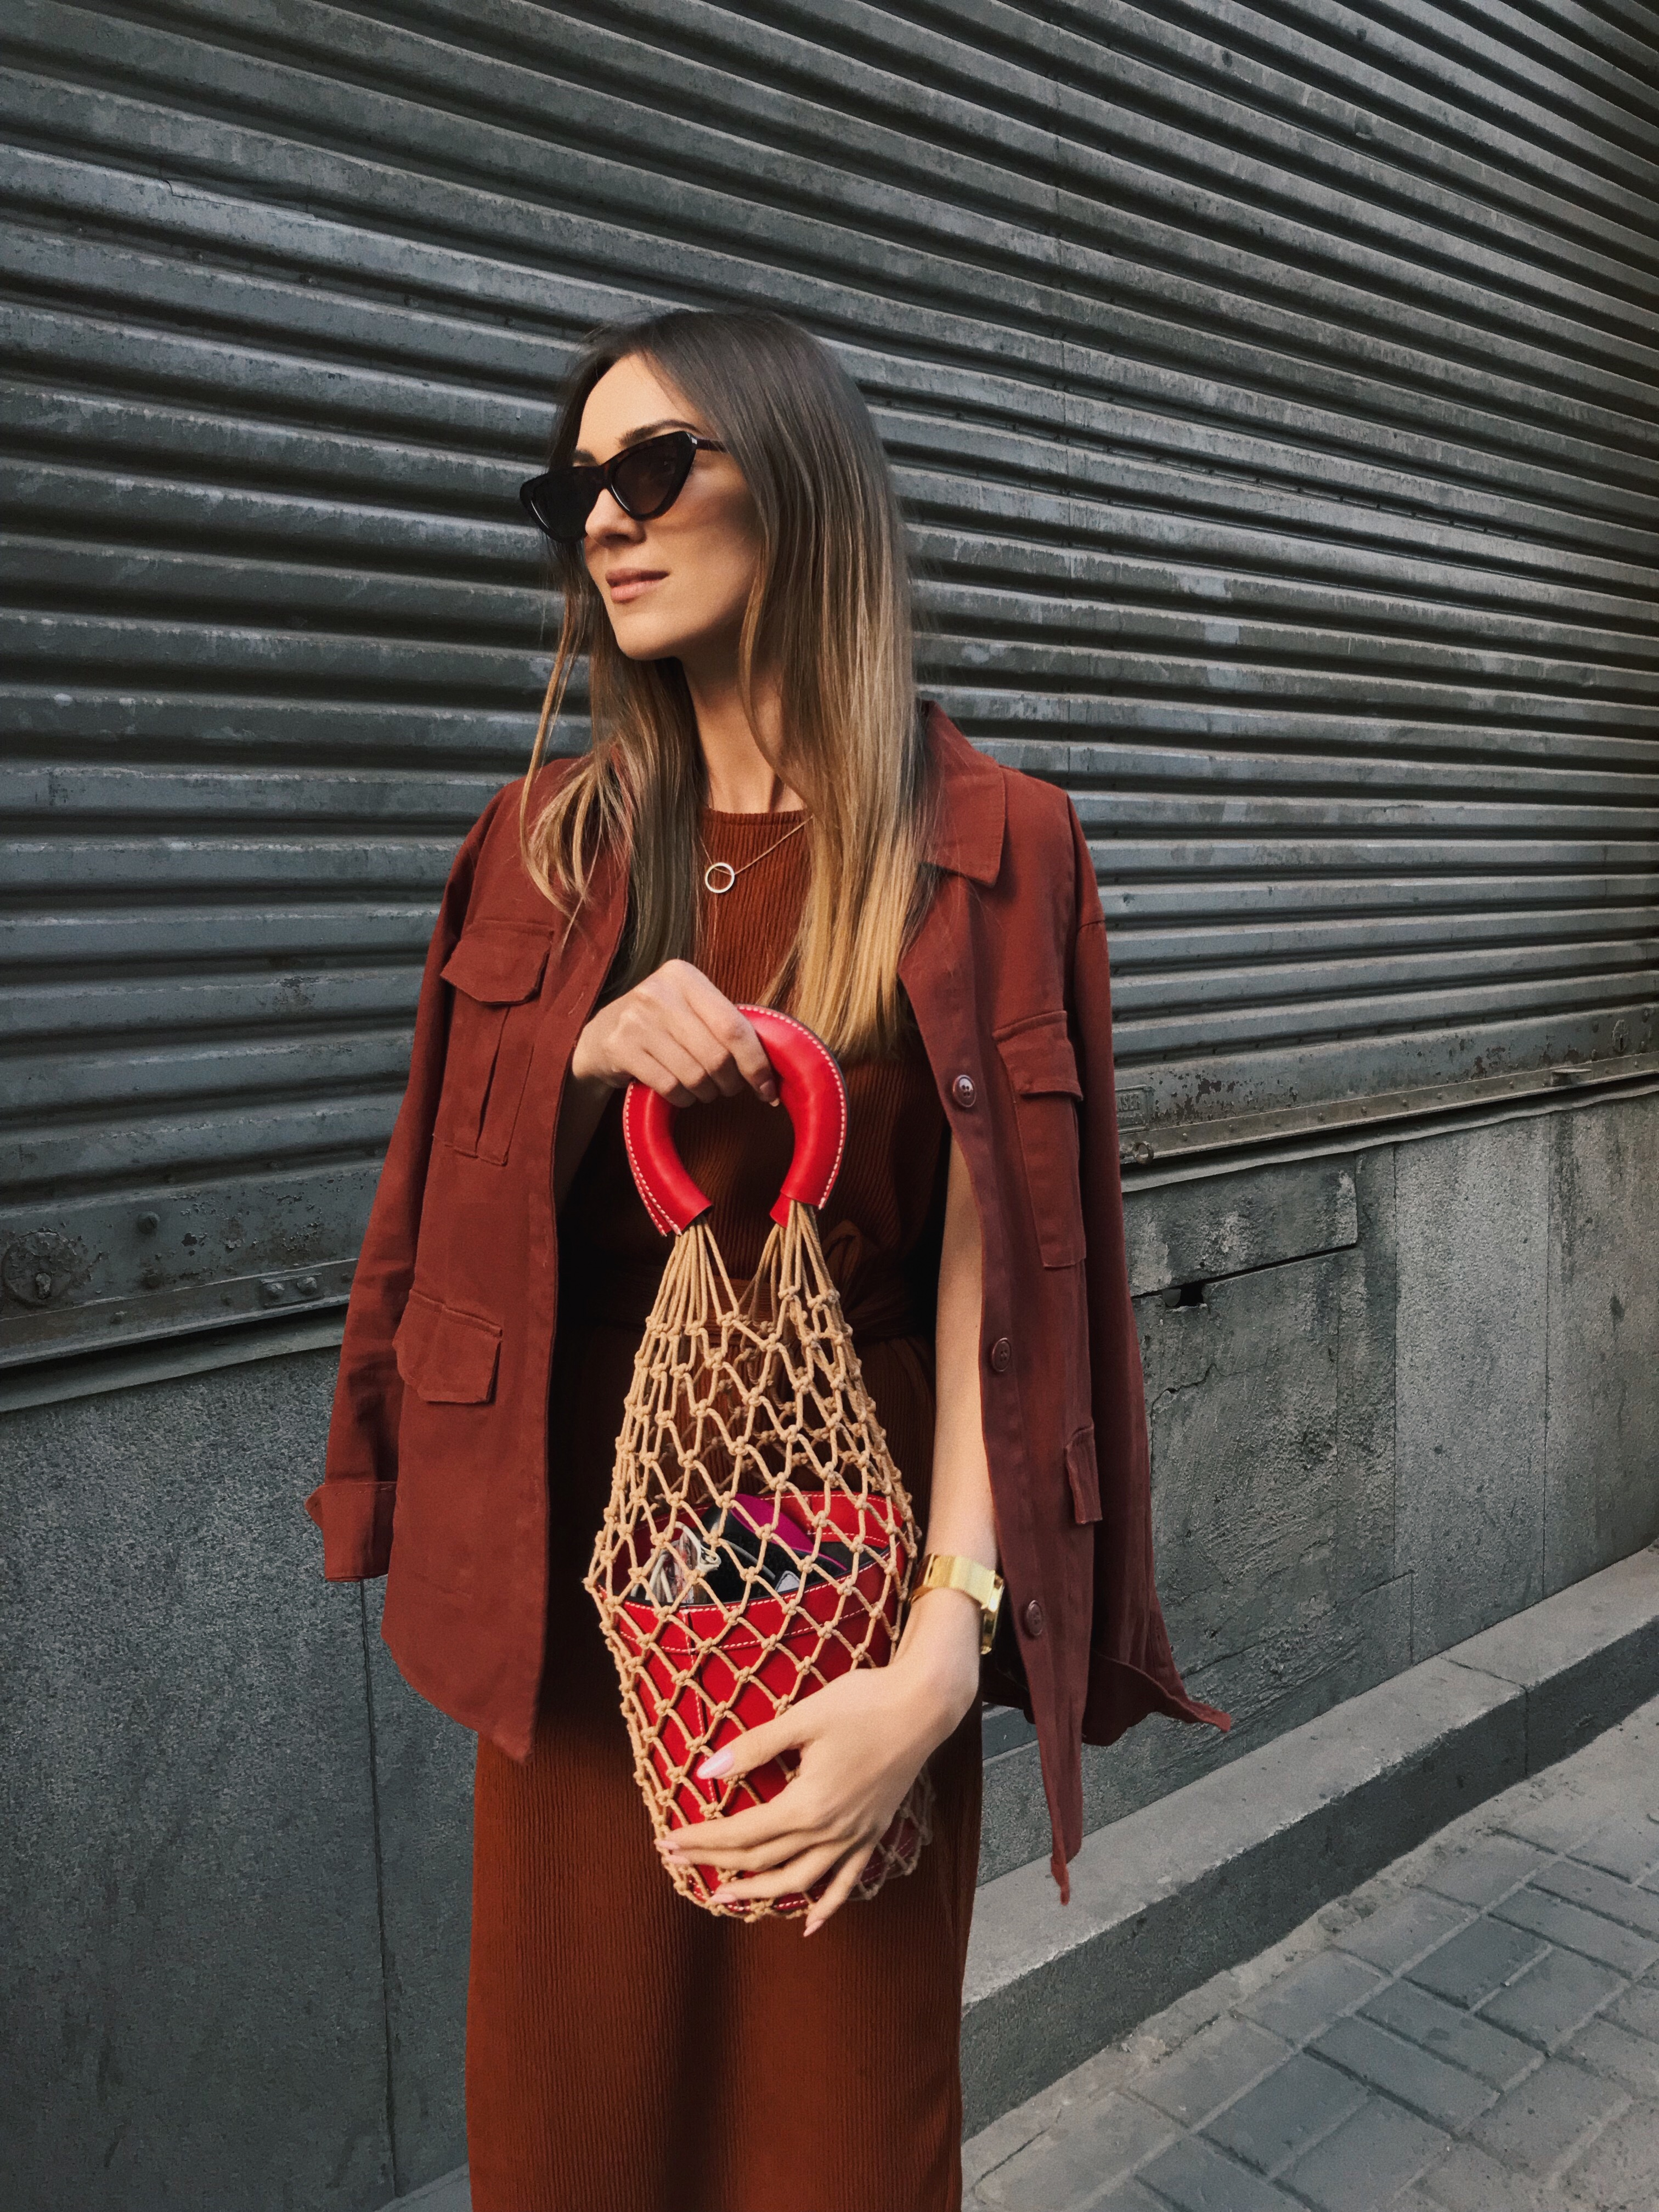 staud-mesh-bag-outfit-street-style